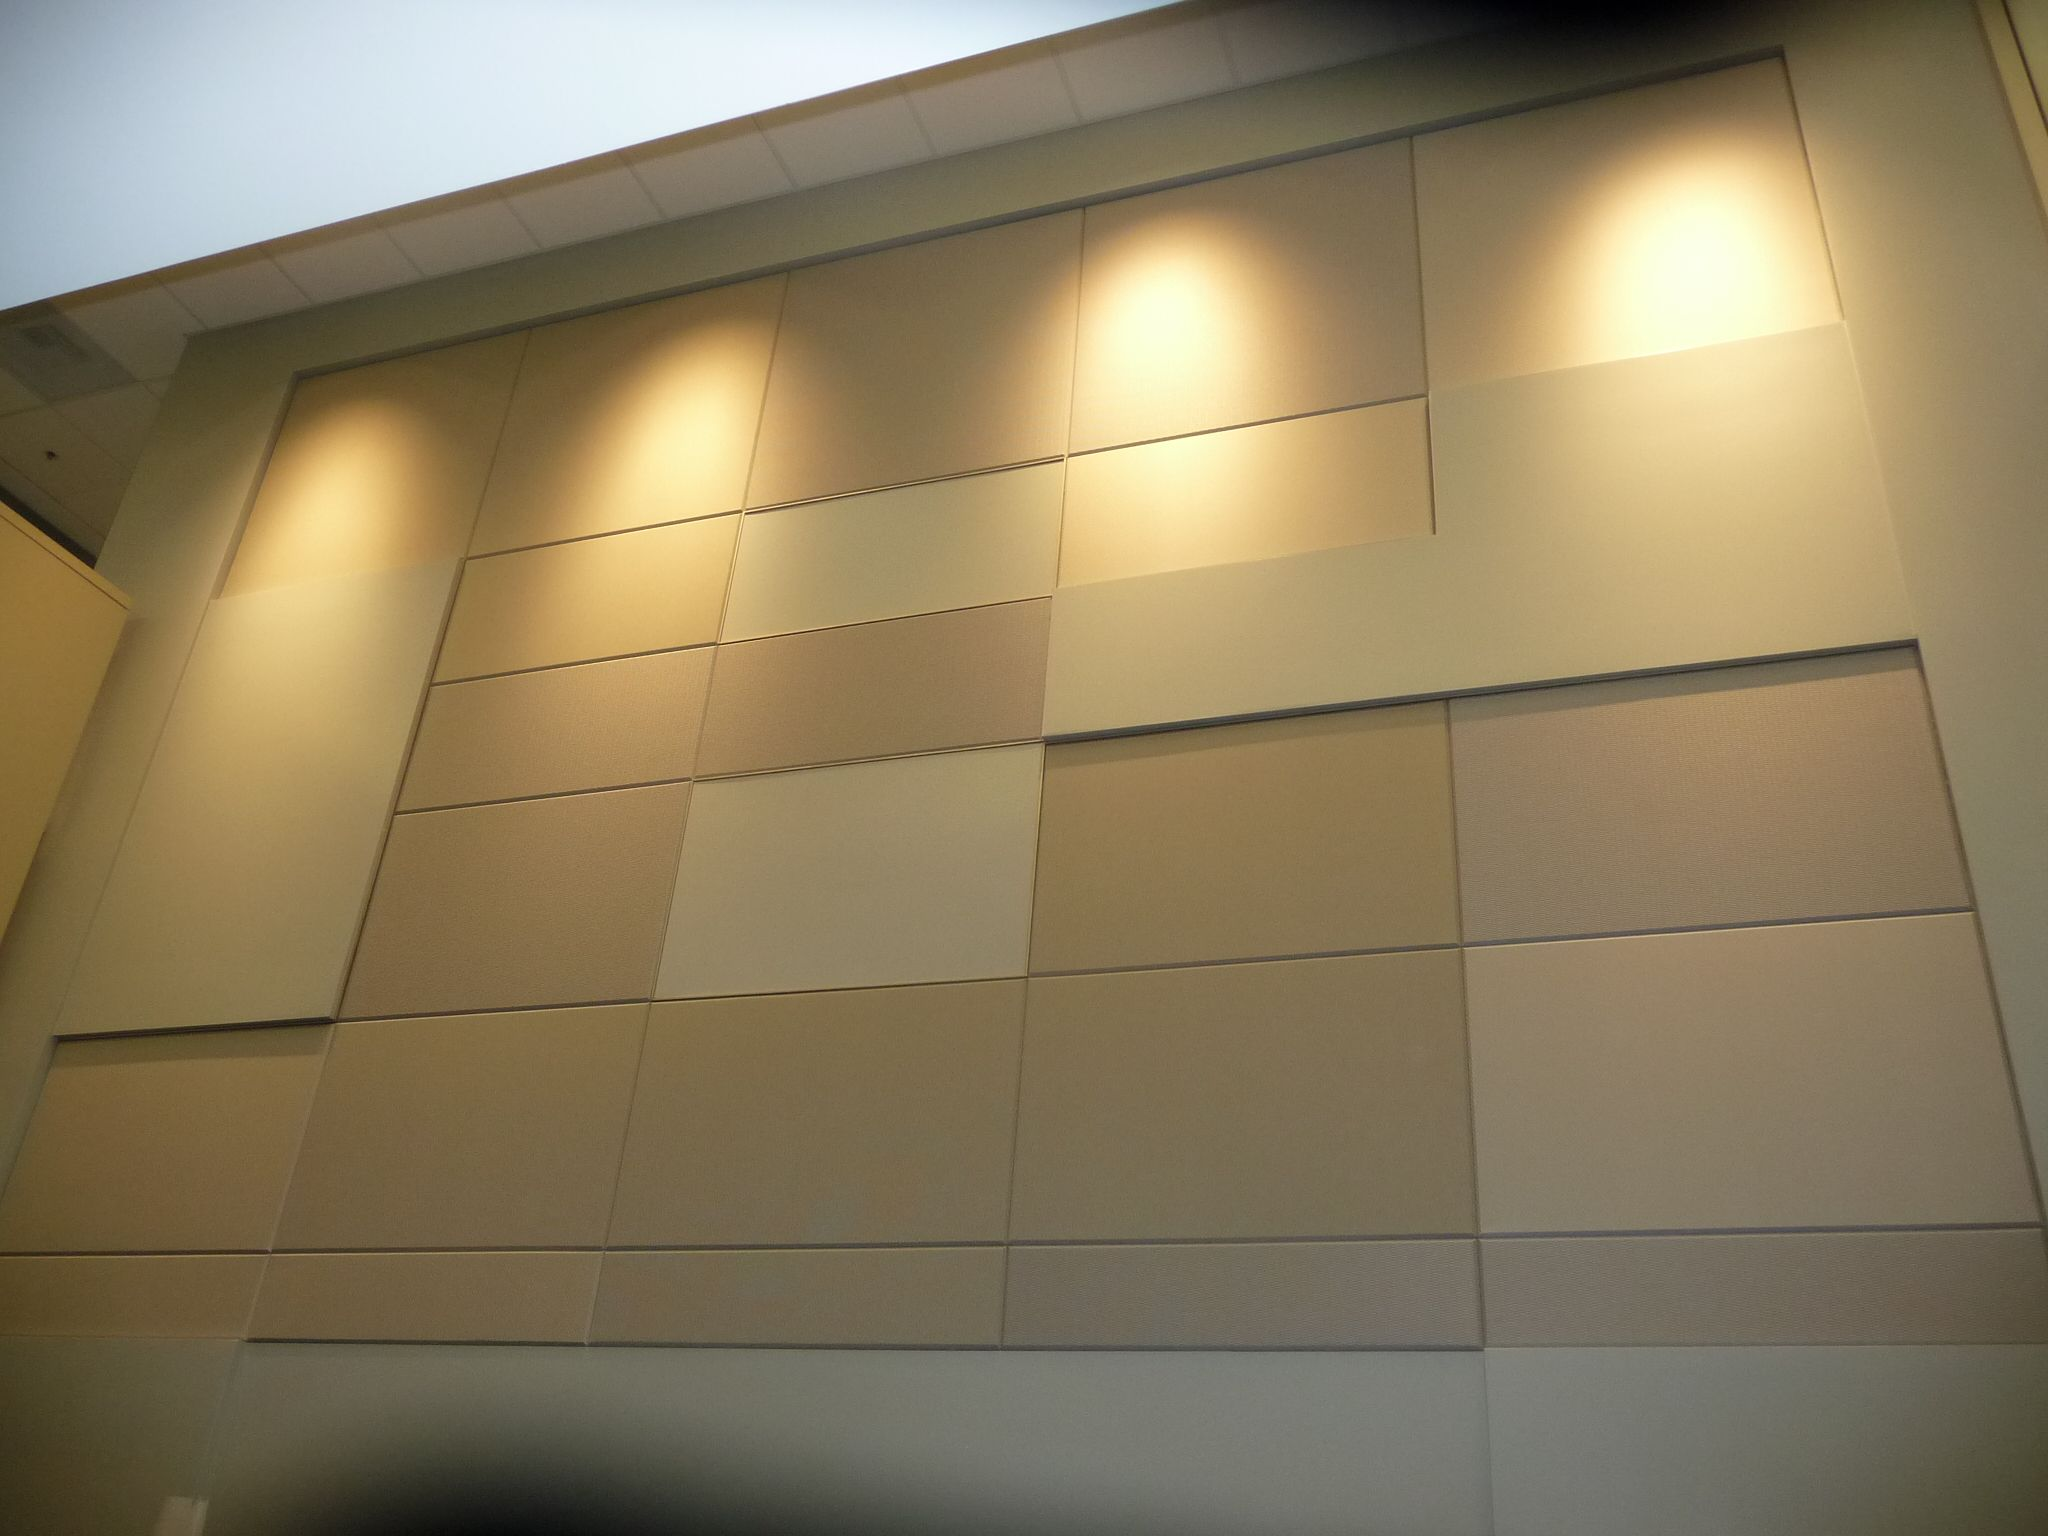 Acoustic ceiling and wall tiles are used in residential acoustic ceiling and wall tiles are used in residential commercial as well as industrial purposes doublecrazyfo Gallery